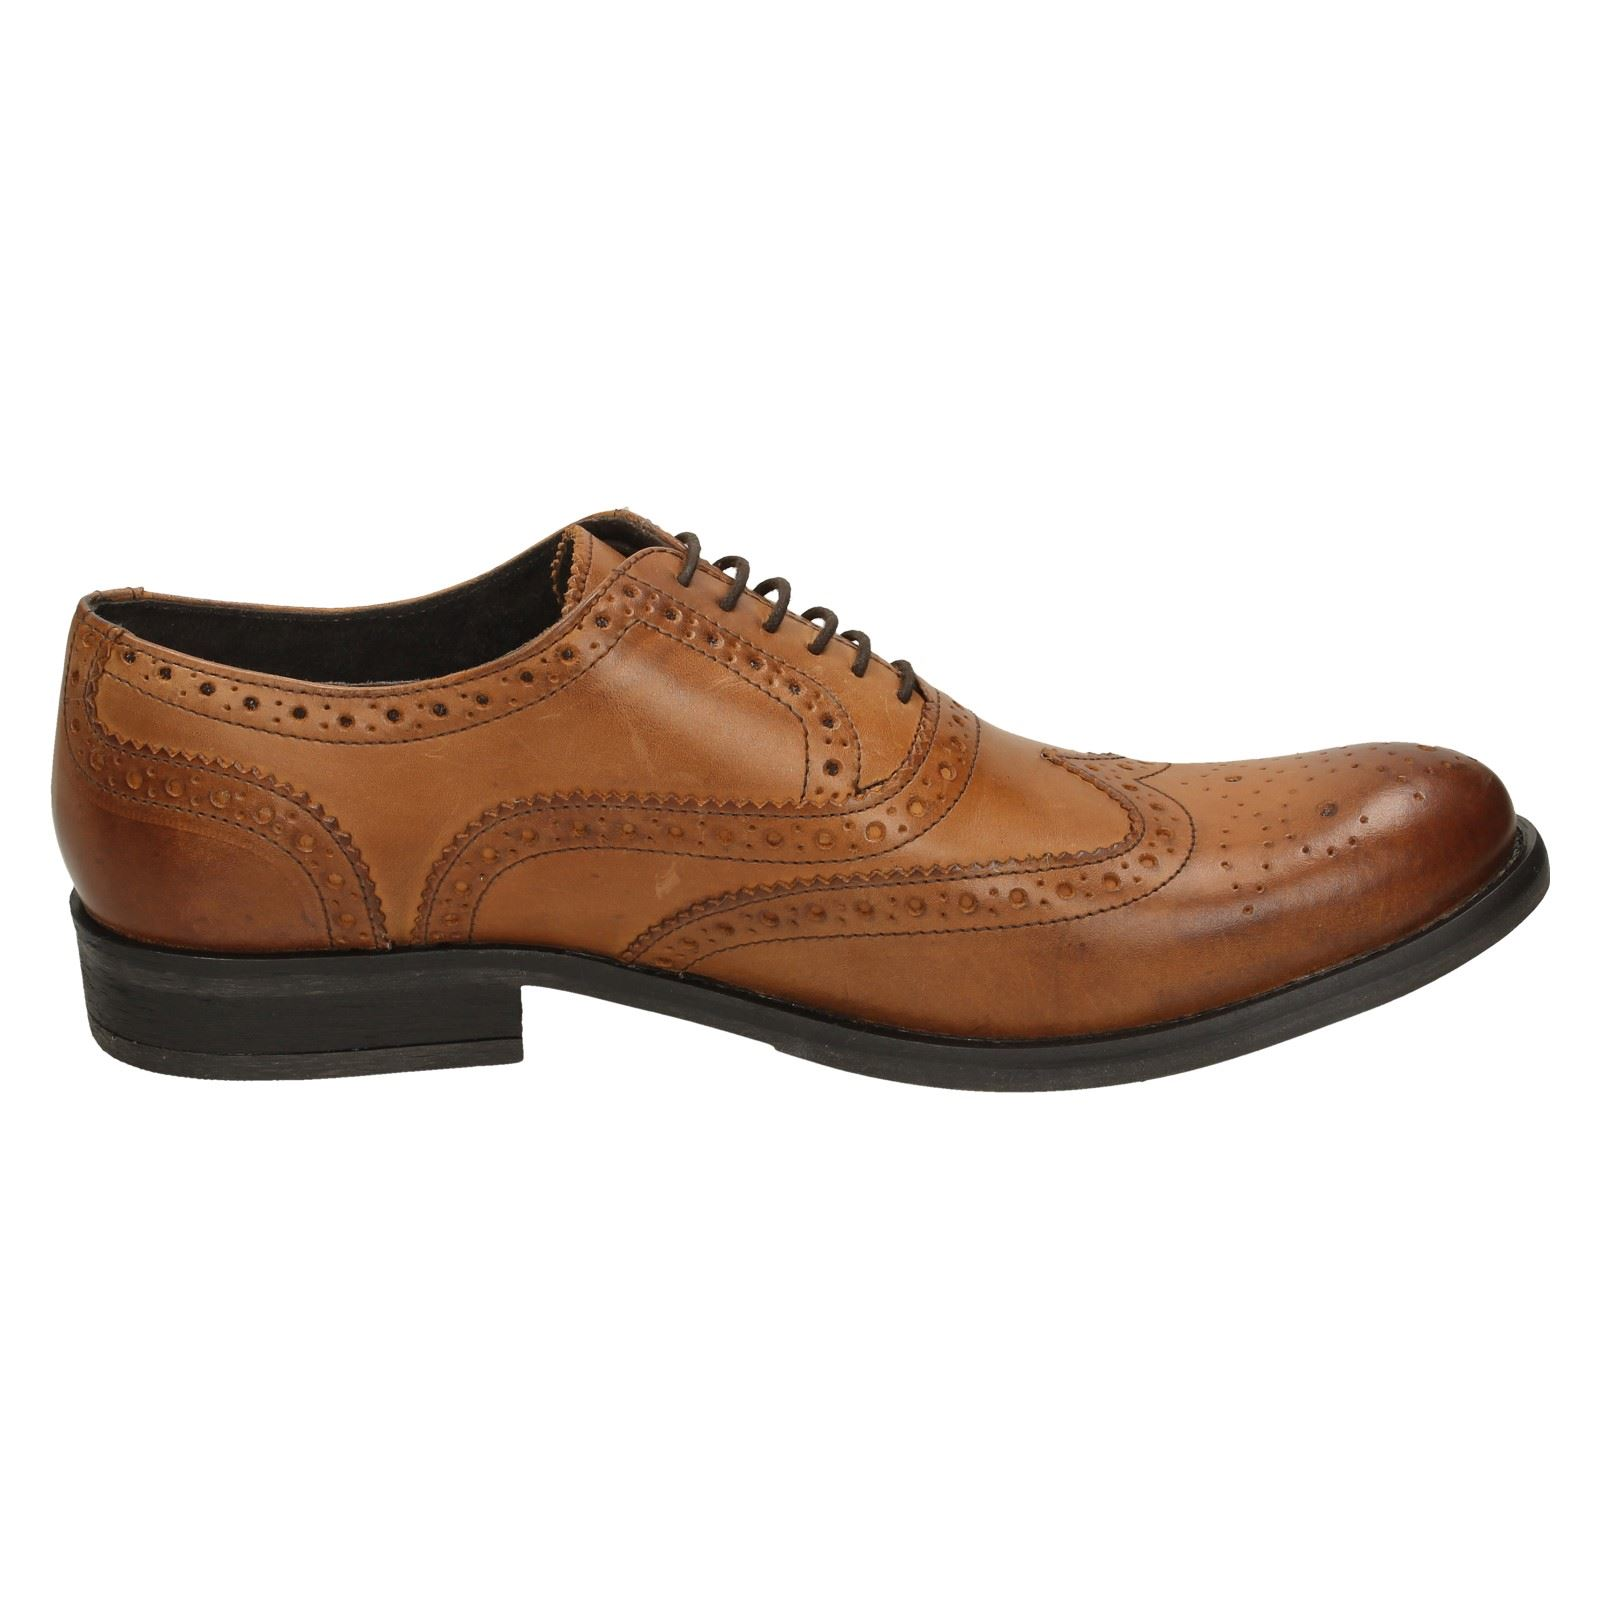 Herren Base London Brogue Leder Schuhes Walnut 0f1eee